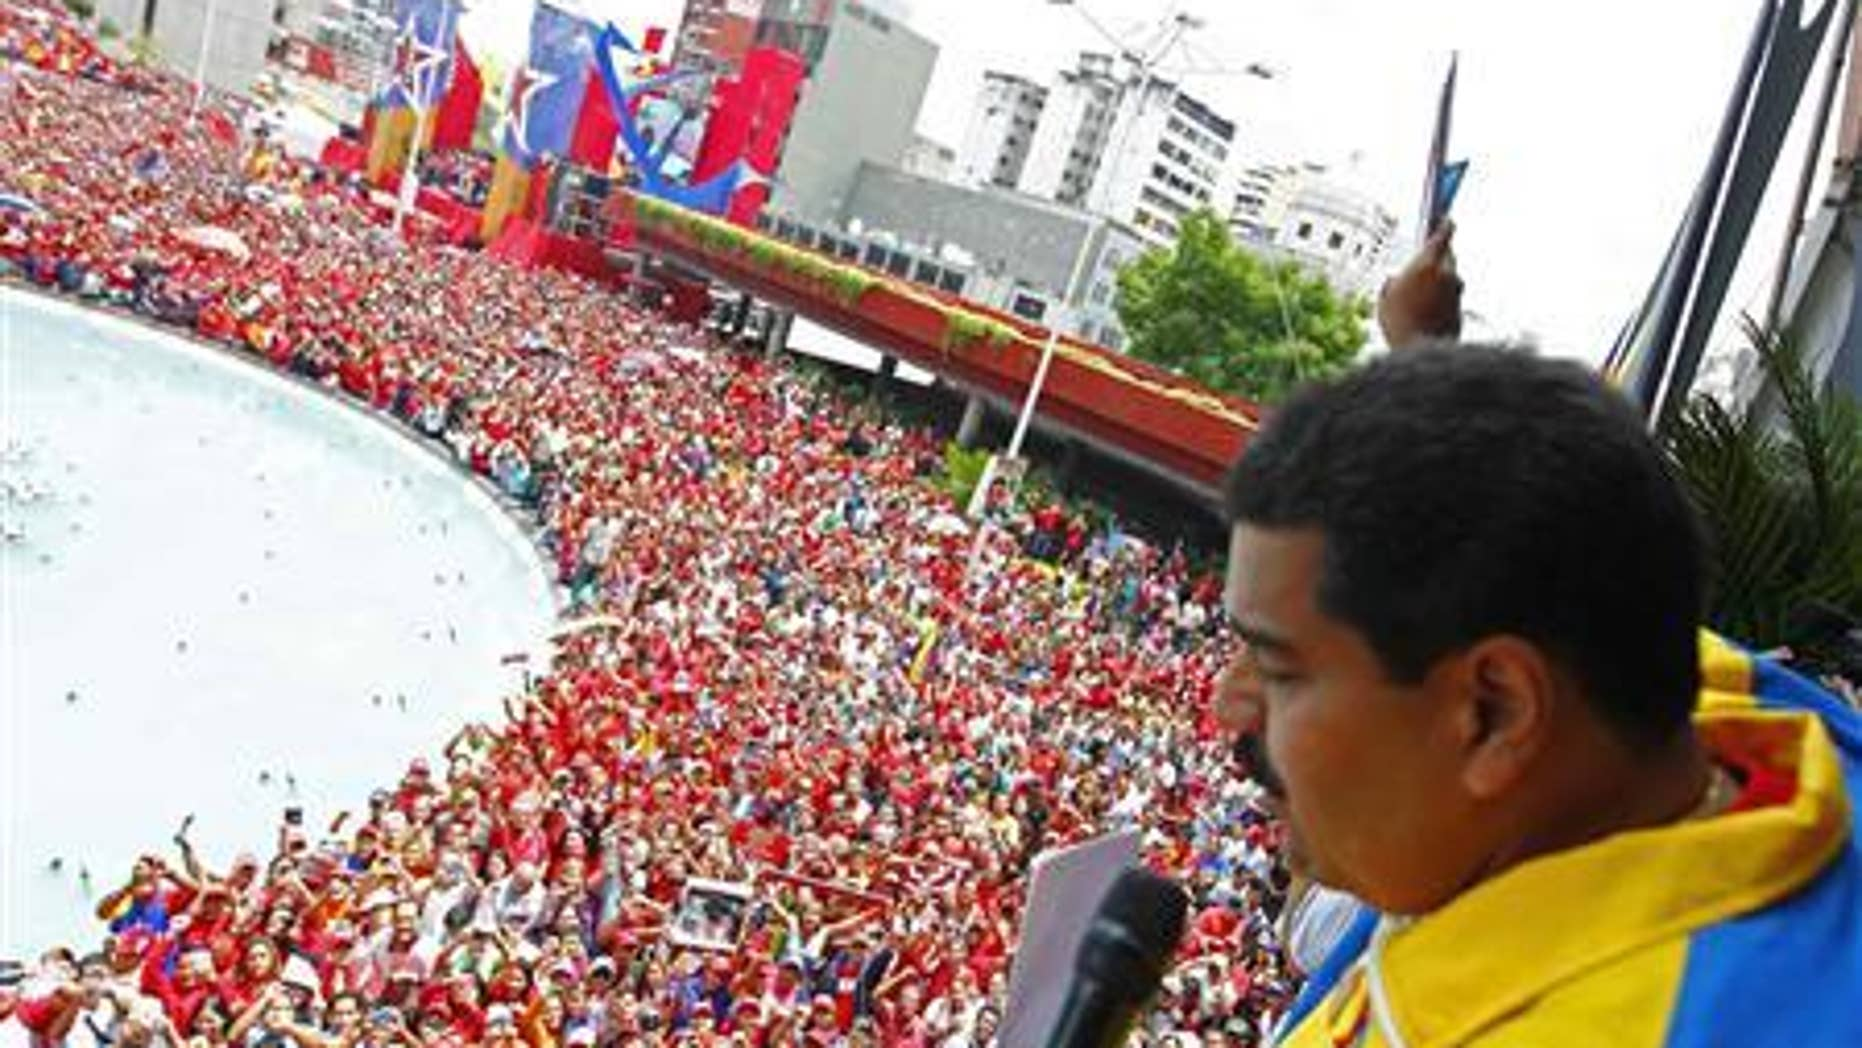 Venezuela's acting President, Nicolas Maduro, gestures to supporters after he registered as a candidate for president in the April 14th election outside the national election board in Caracas March 11, 2013. REUTERS/Carlos Garcia Rawlins